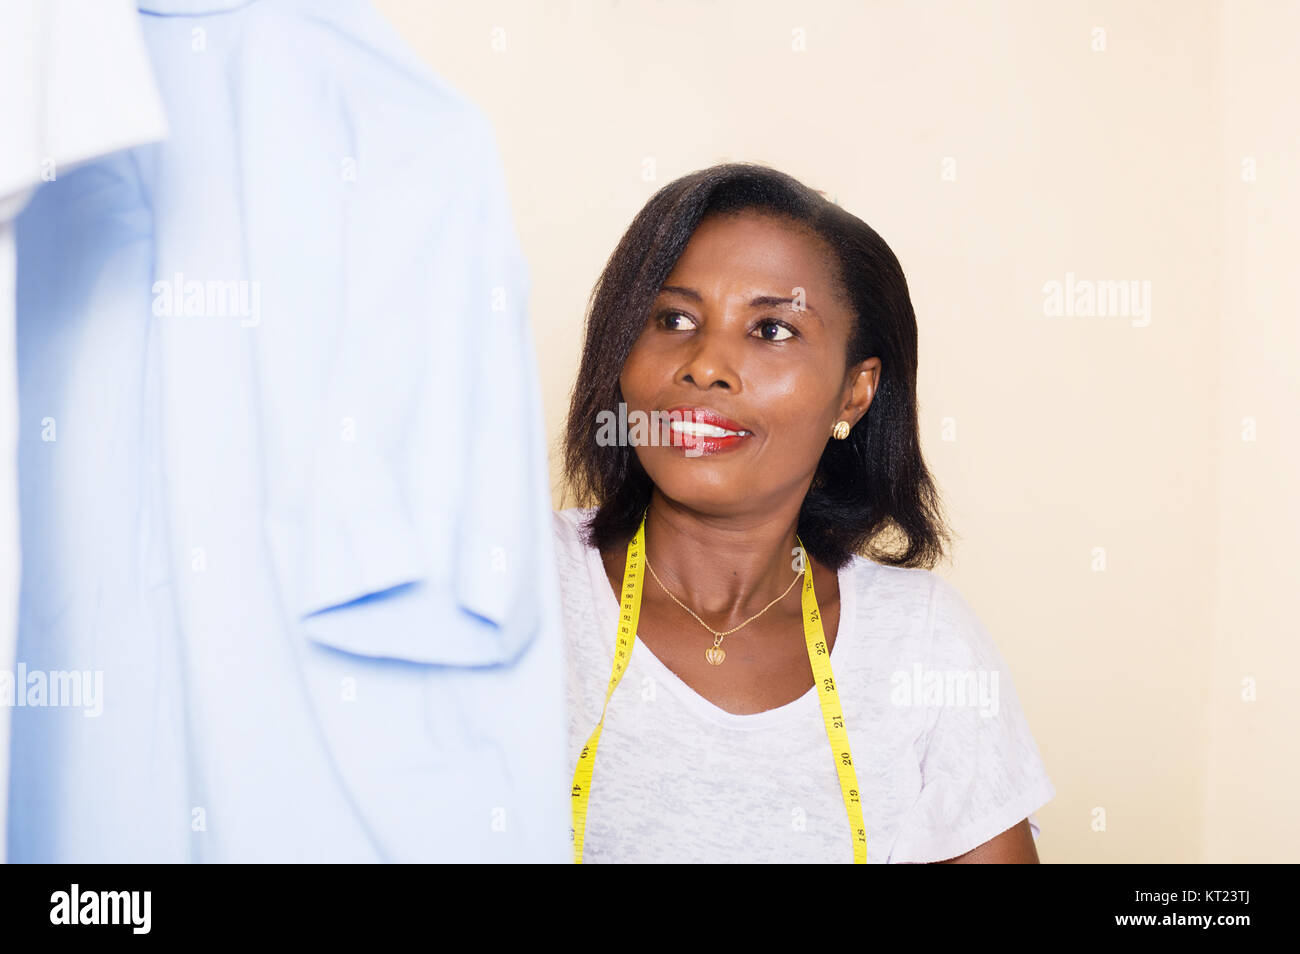 Close-up of a seamstress arranging shirts in the studio - Stock Image